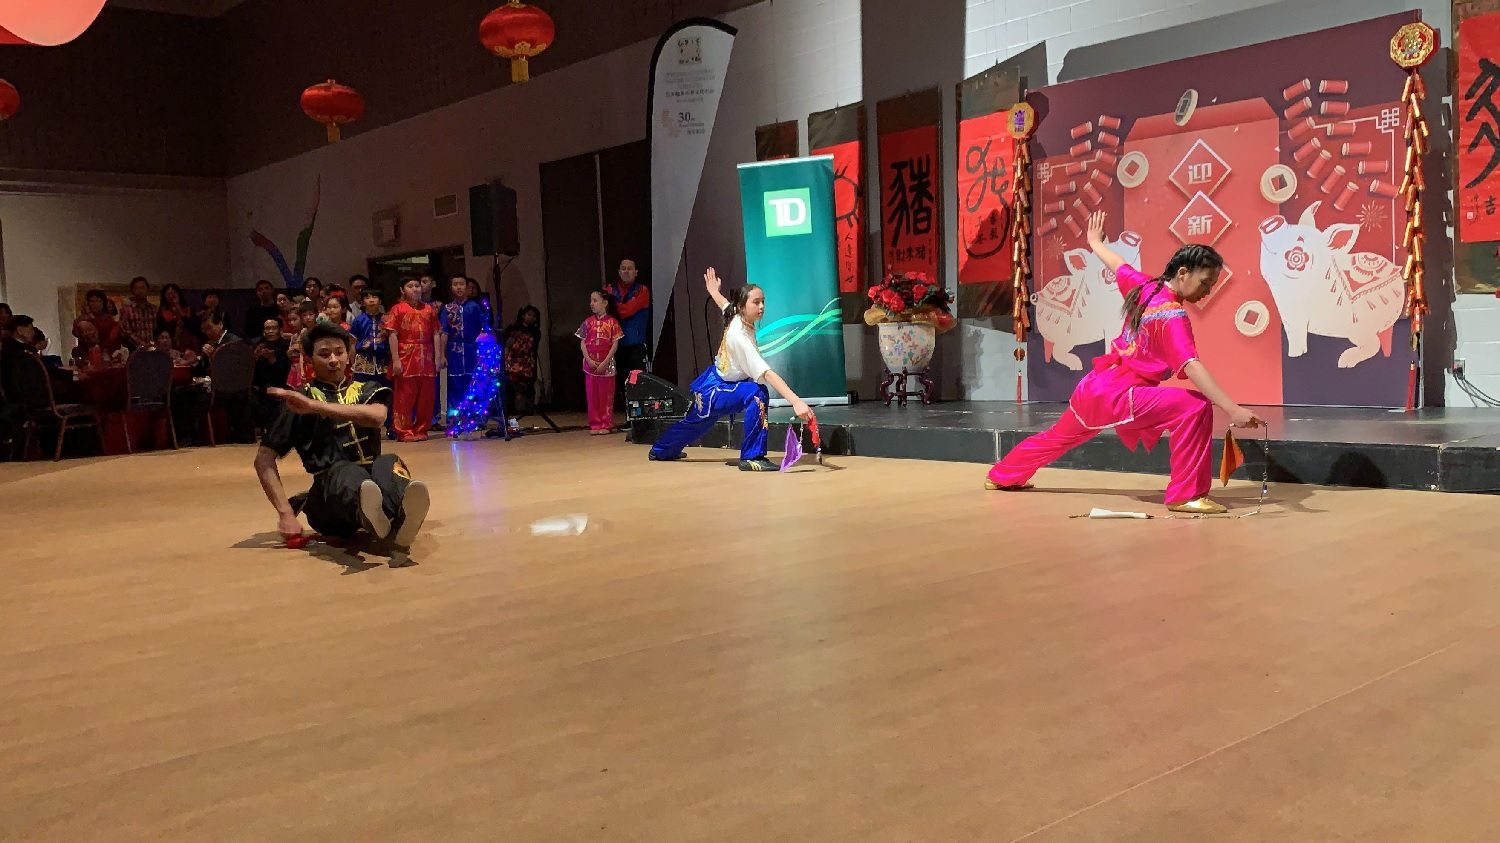 wayland-li-wushu-year-of-the-pig-dinner-chinese-cultural-centre-2019-06.jpg